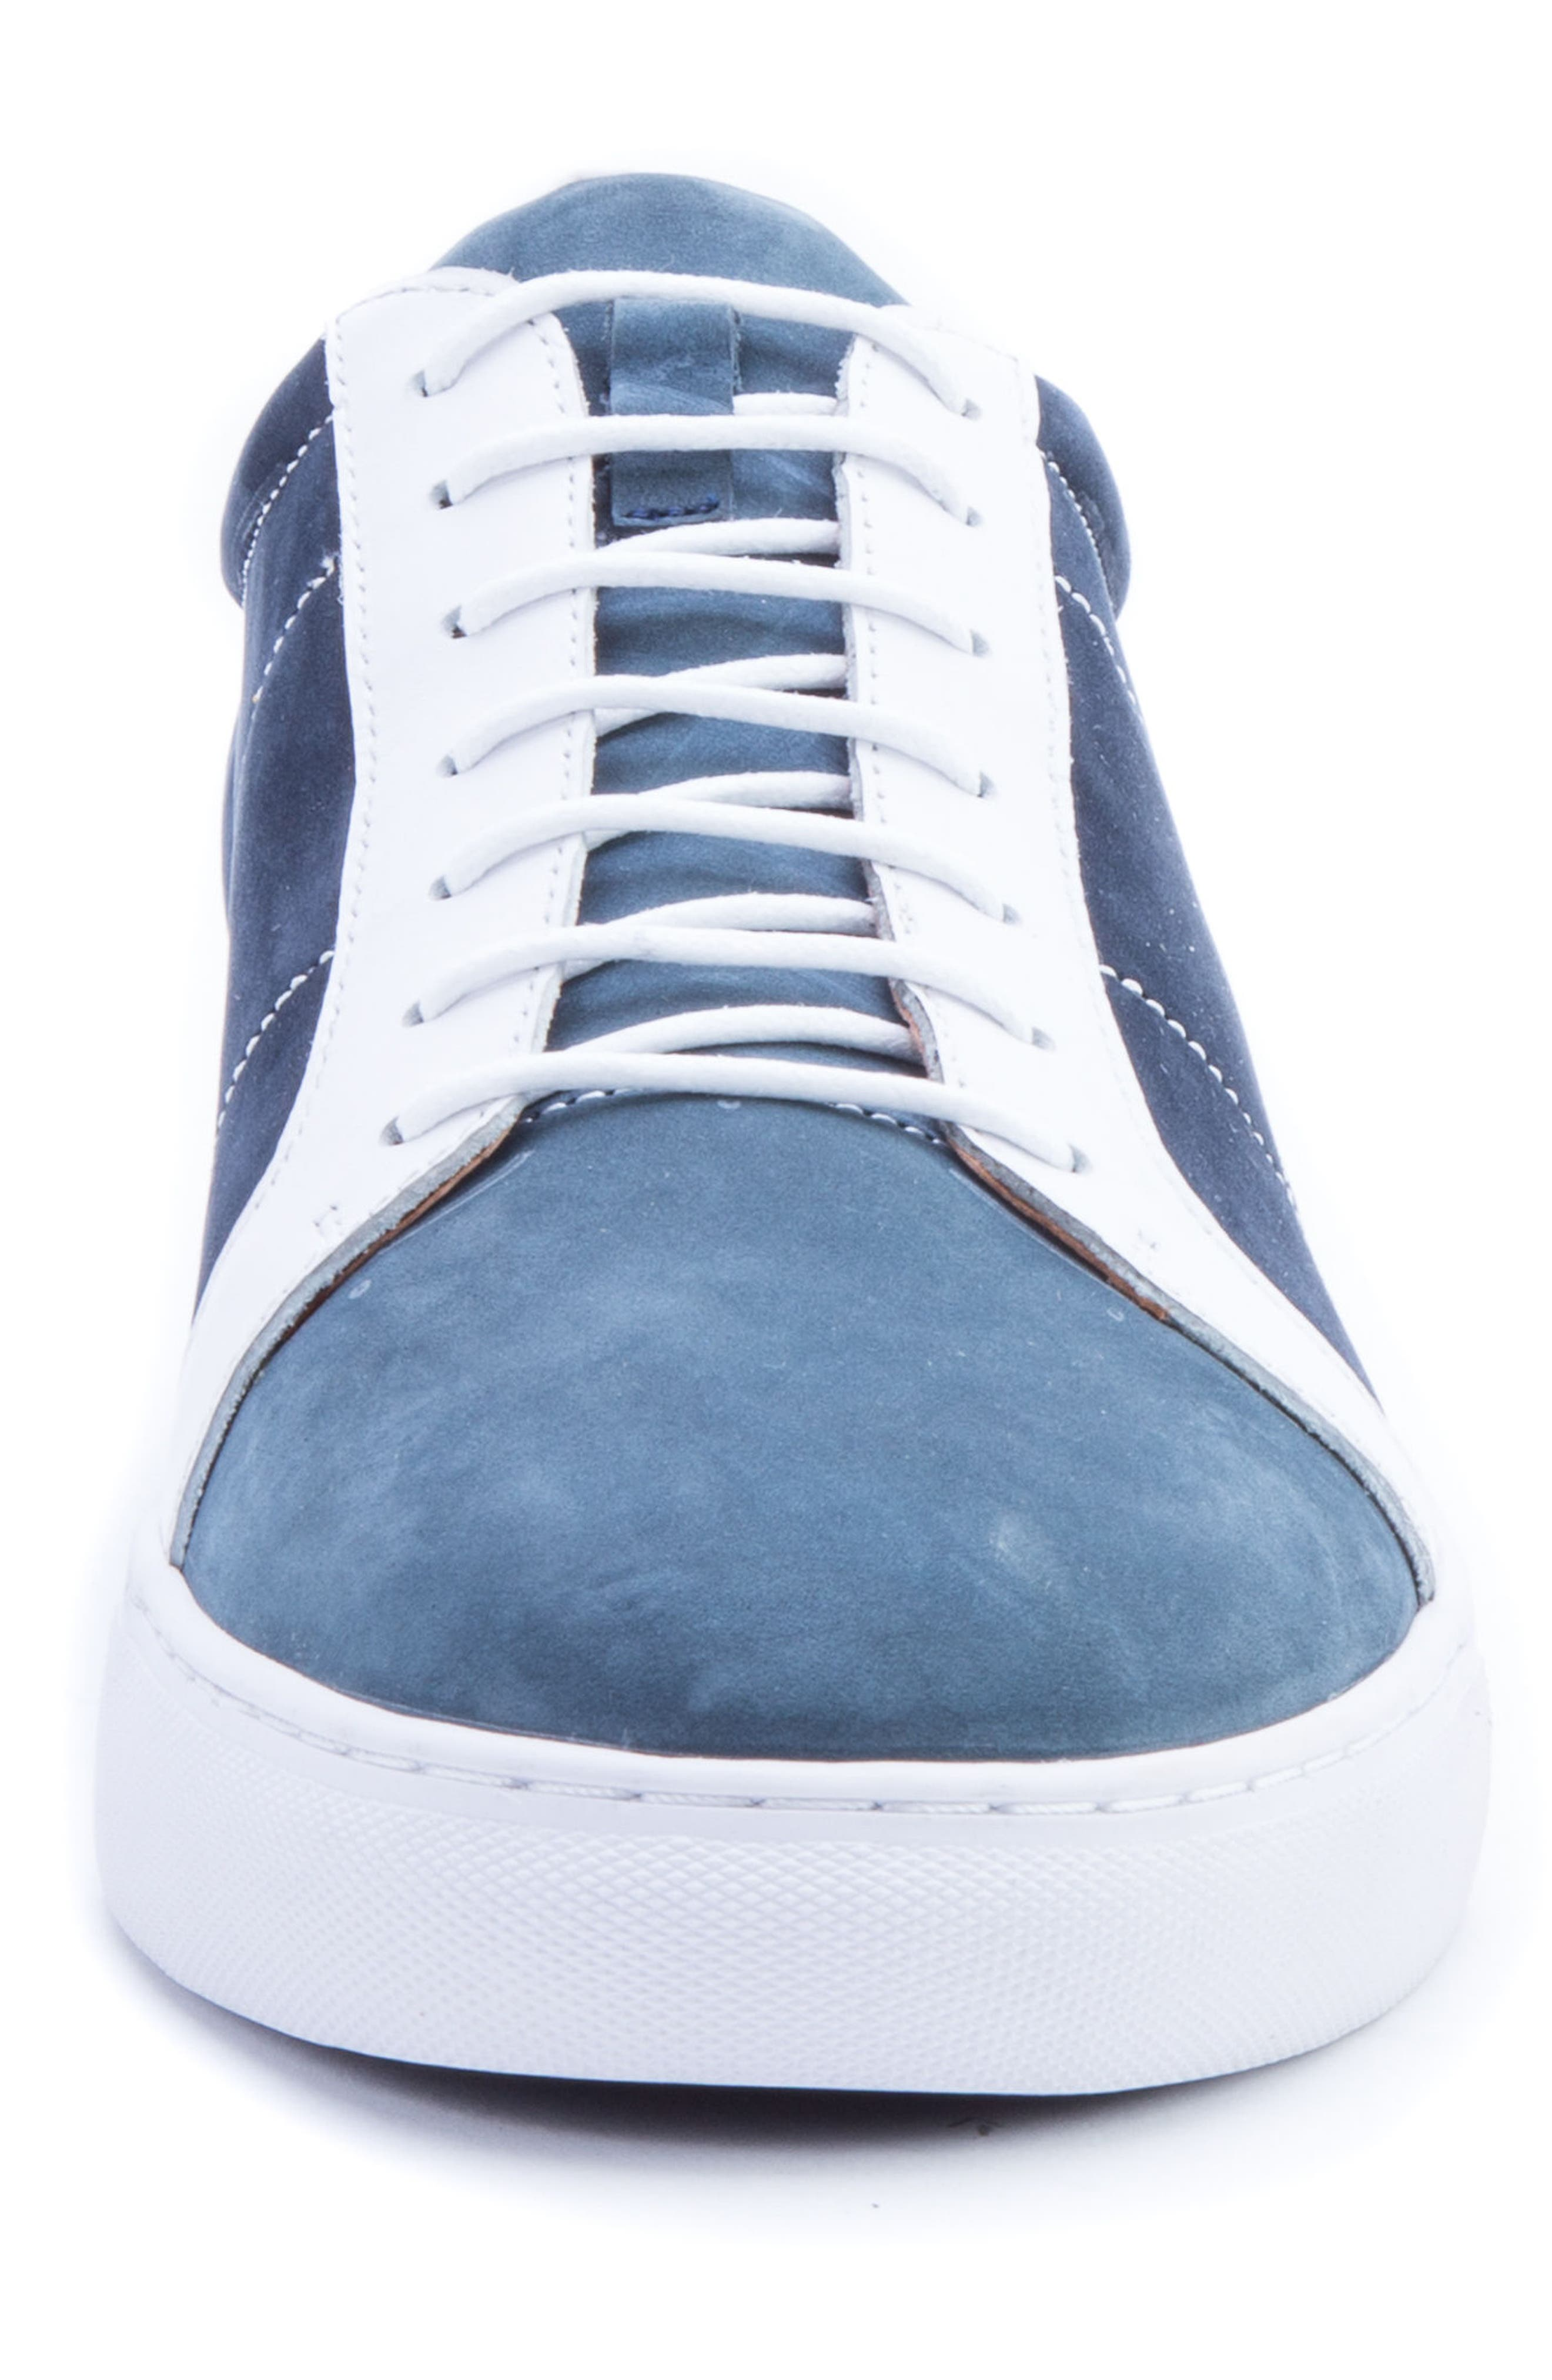 Gonzalo Low Top Sneaker,                             Alternate thumbnail 4, color,                             Navy Suede